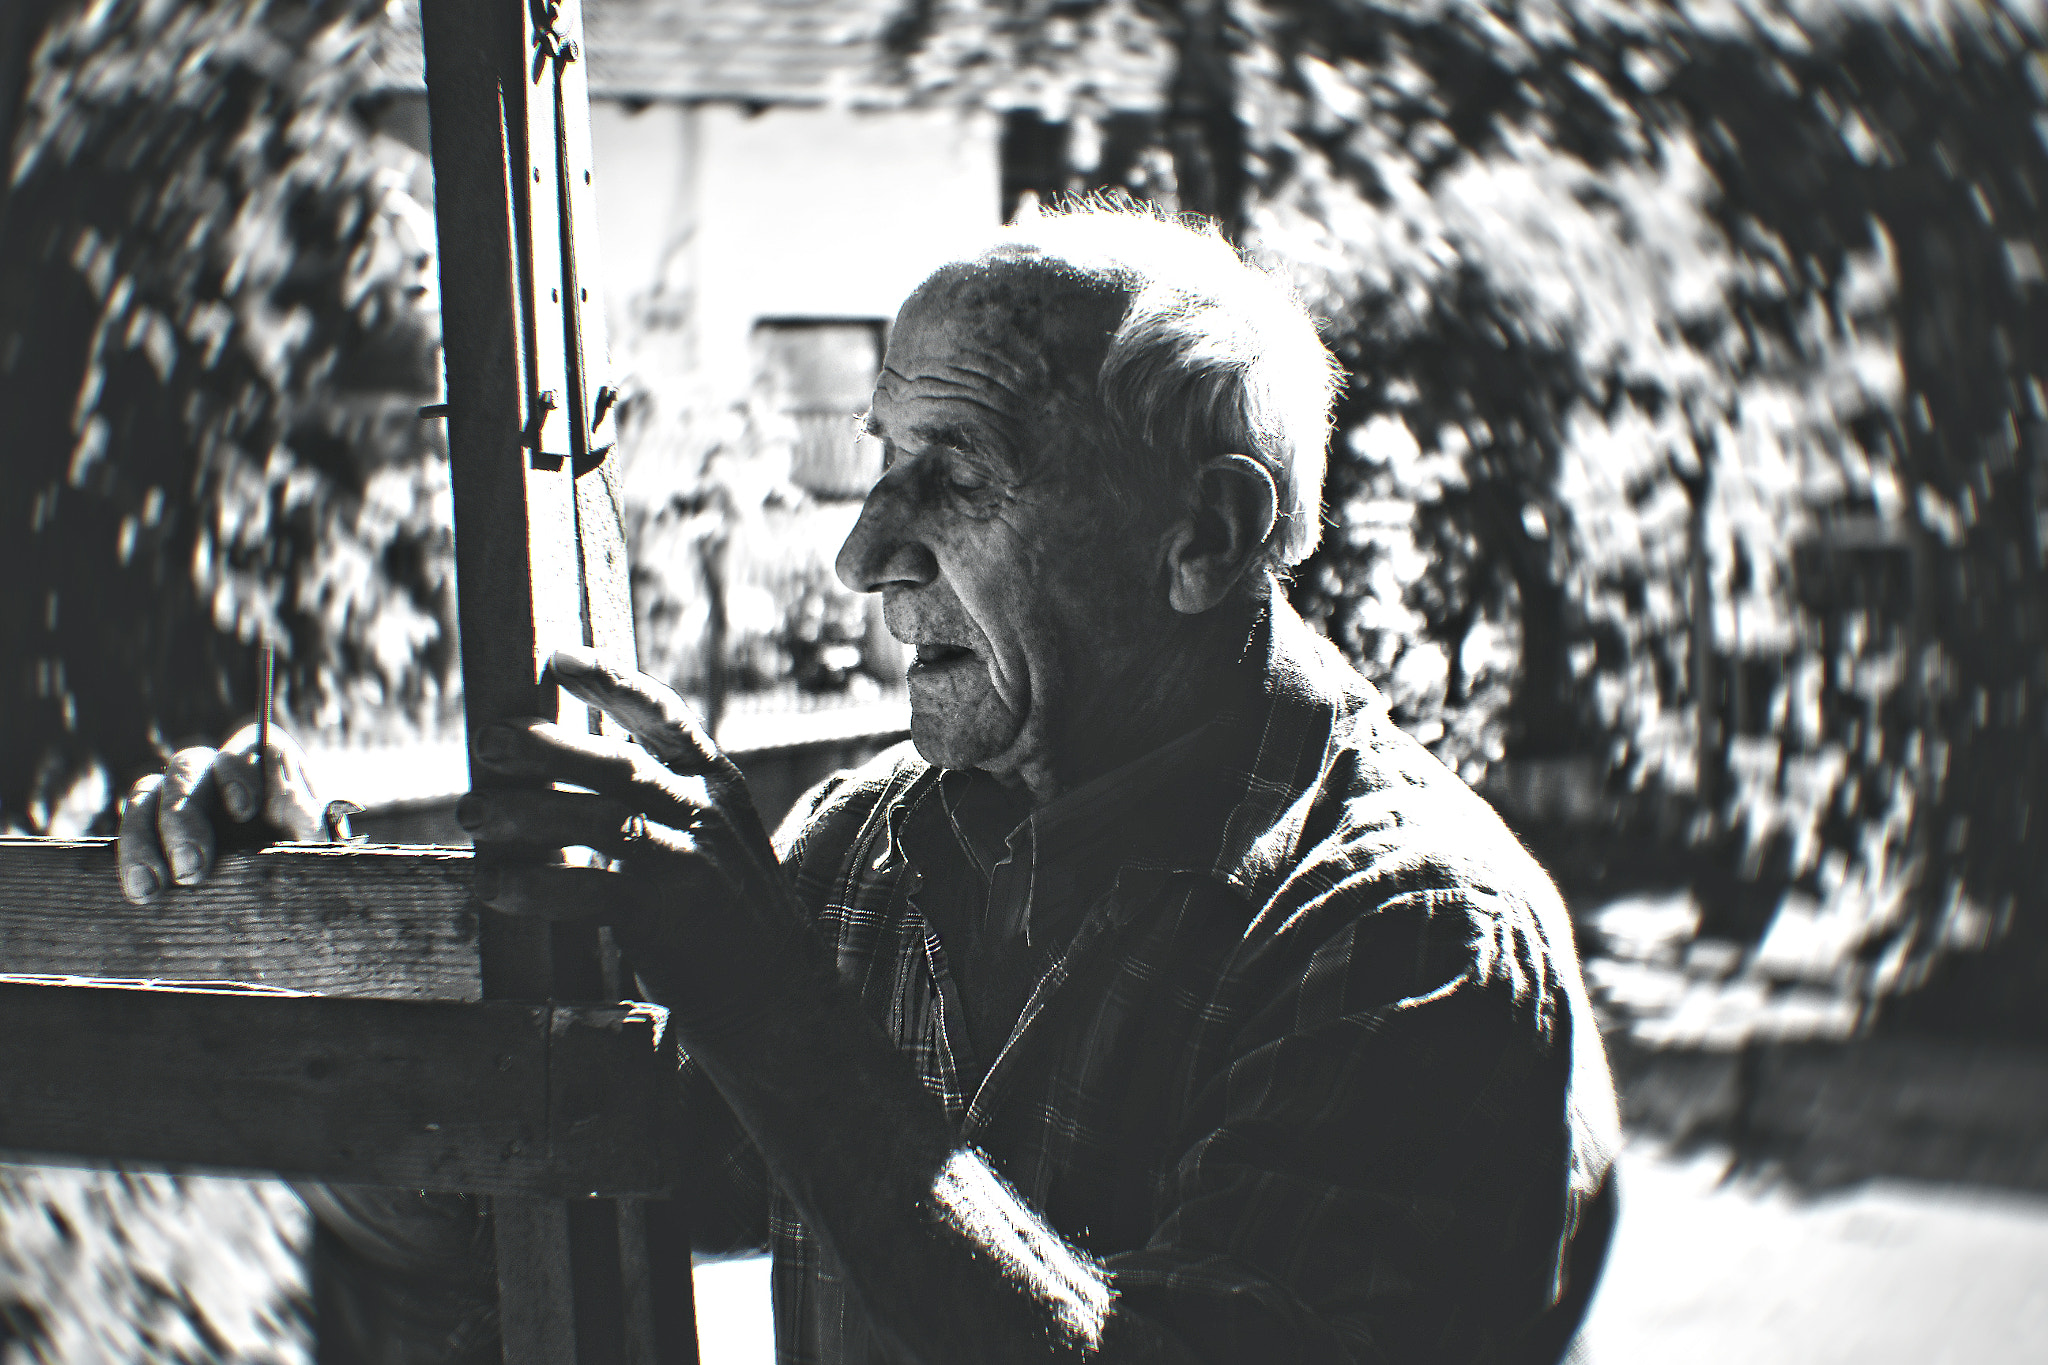 Photograph Old man face /BW/ by Aid Bešić on 500px